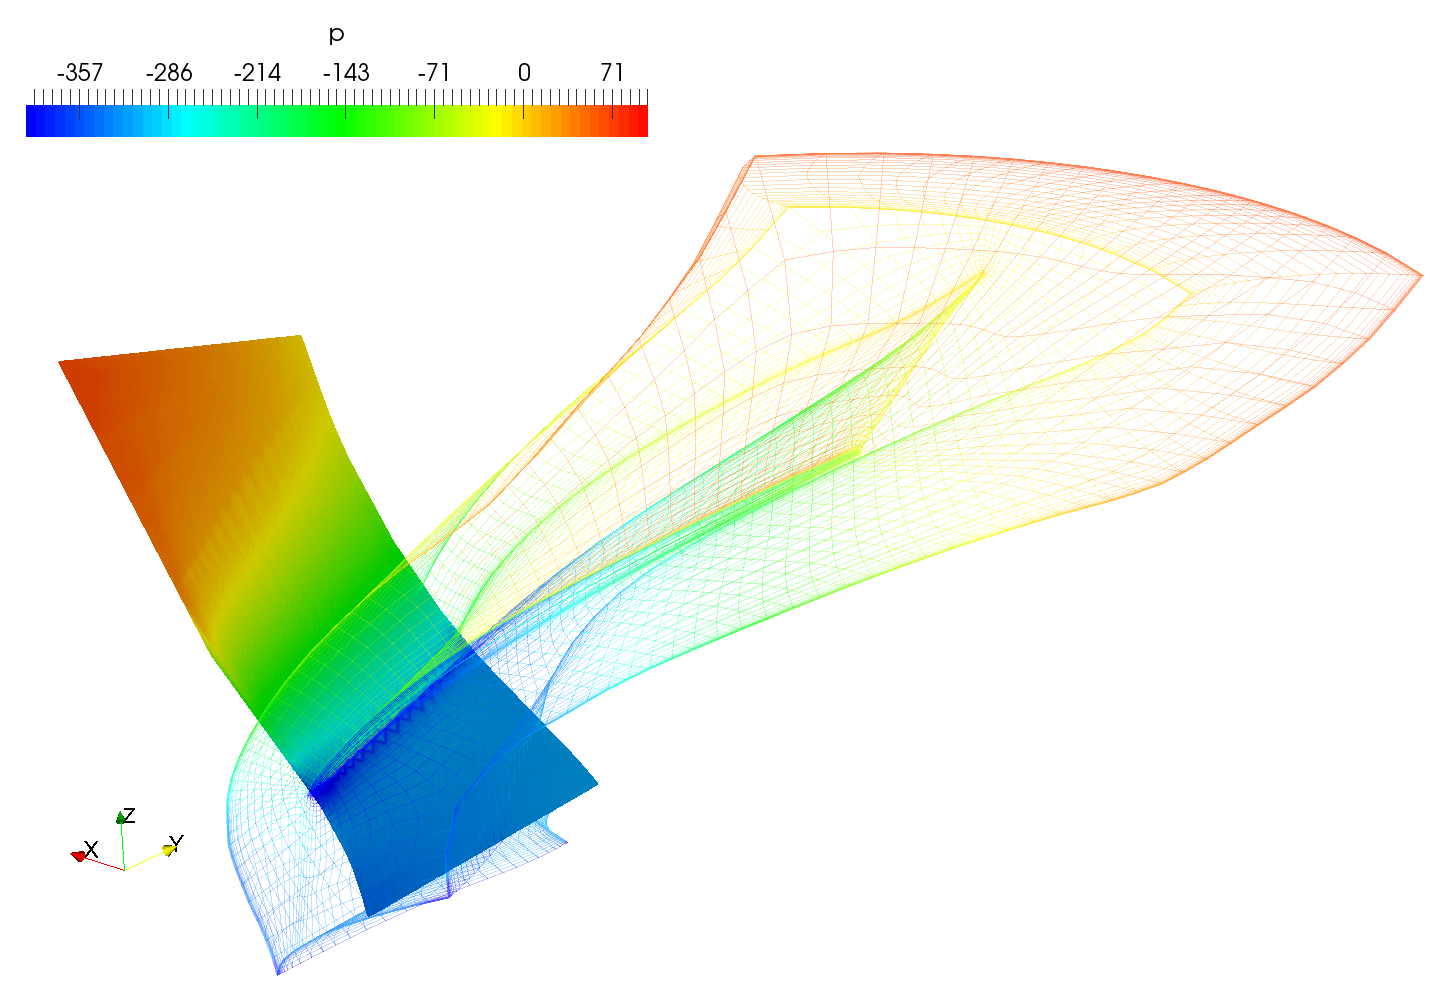 Axial-Pump-Turbomachinery-CFD-Rotor-Meridional-Average